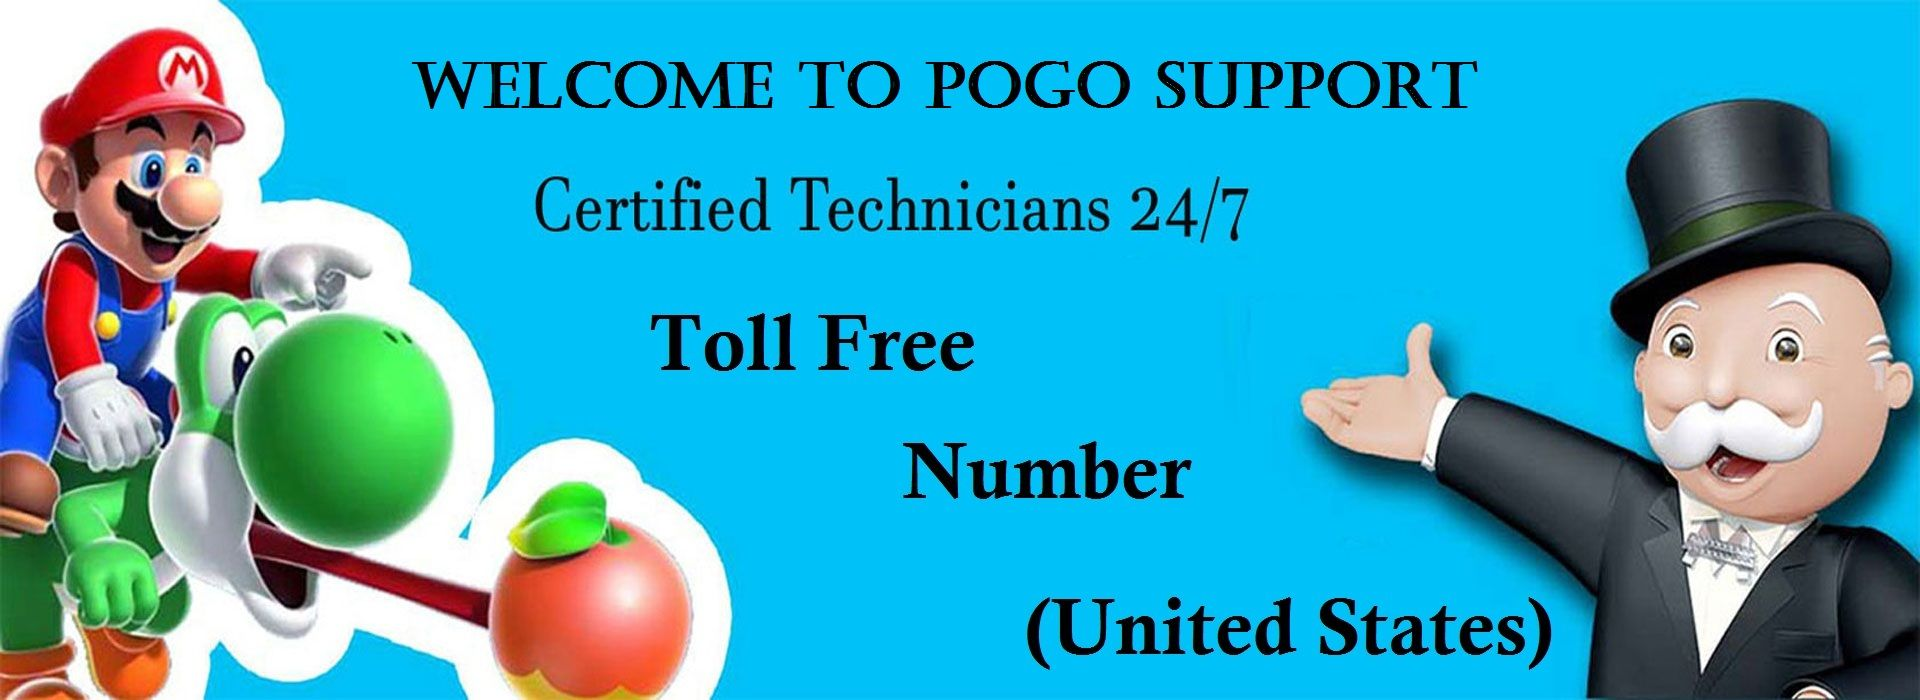 Pogo Phone Support Number. Resolve any technical issue on